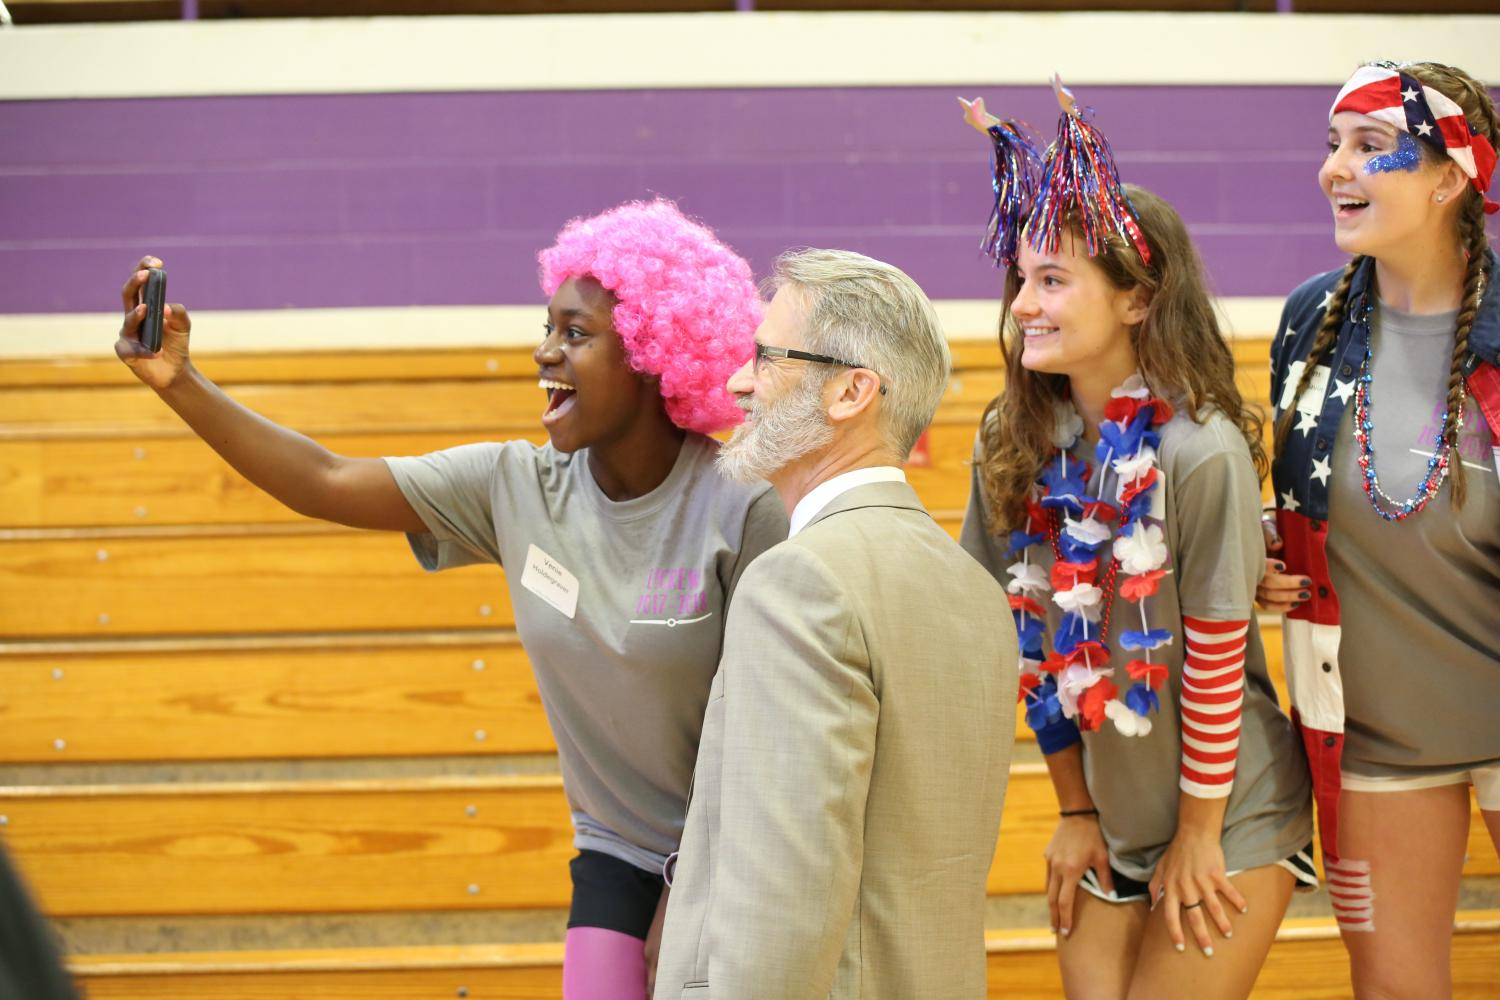 Superintendent in the building, Venie Holdengraver (12) snaps a selfie with Eric Knost alongside Sabriana Jung and Samantha MacGavin at Freshman Orientation, Aug. 11.